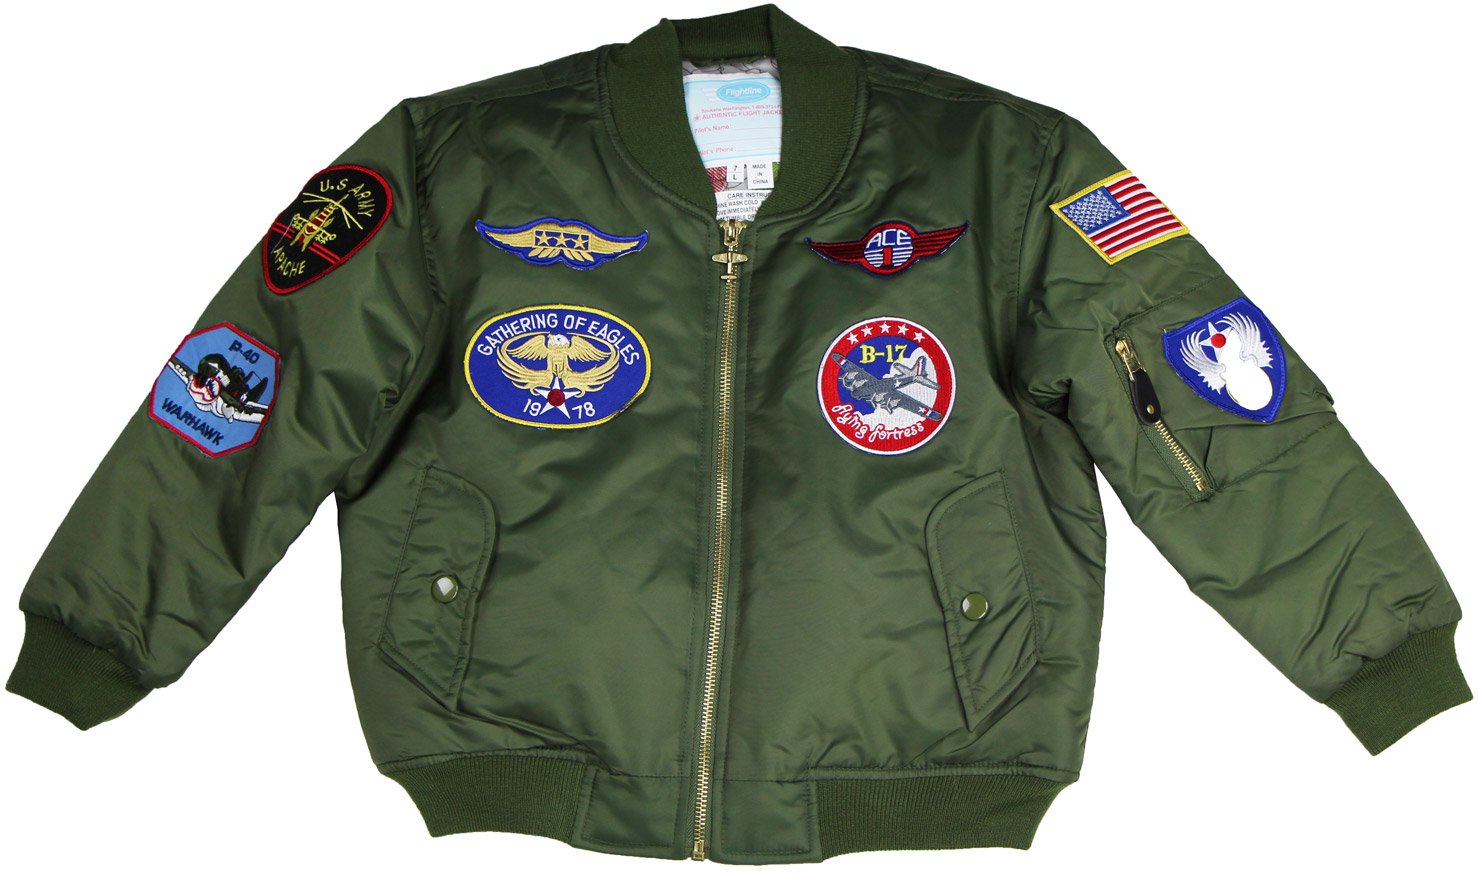 956bac6f6 Youth MA-1 Flight Jacket with Patches